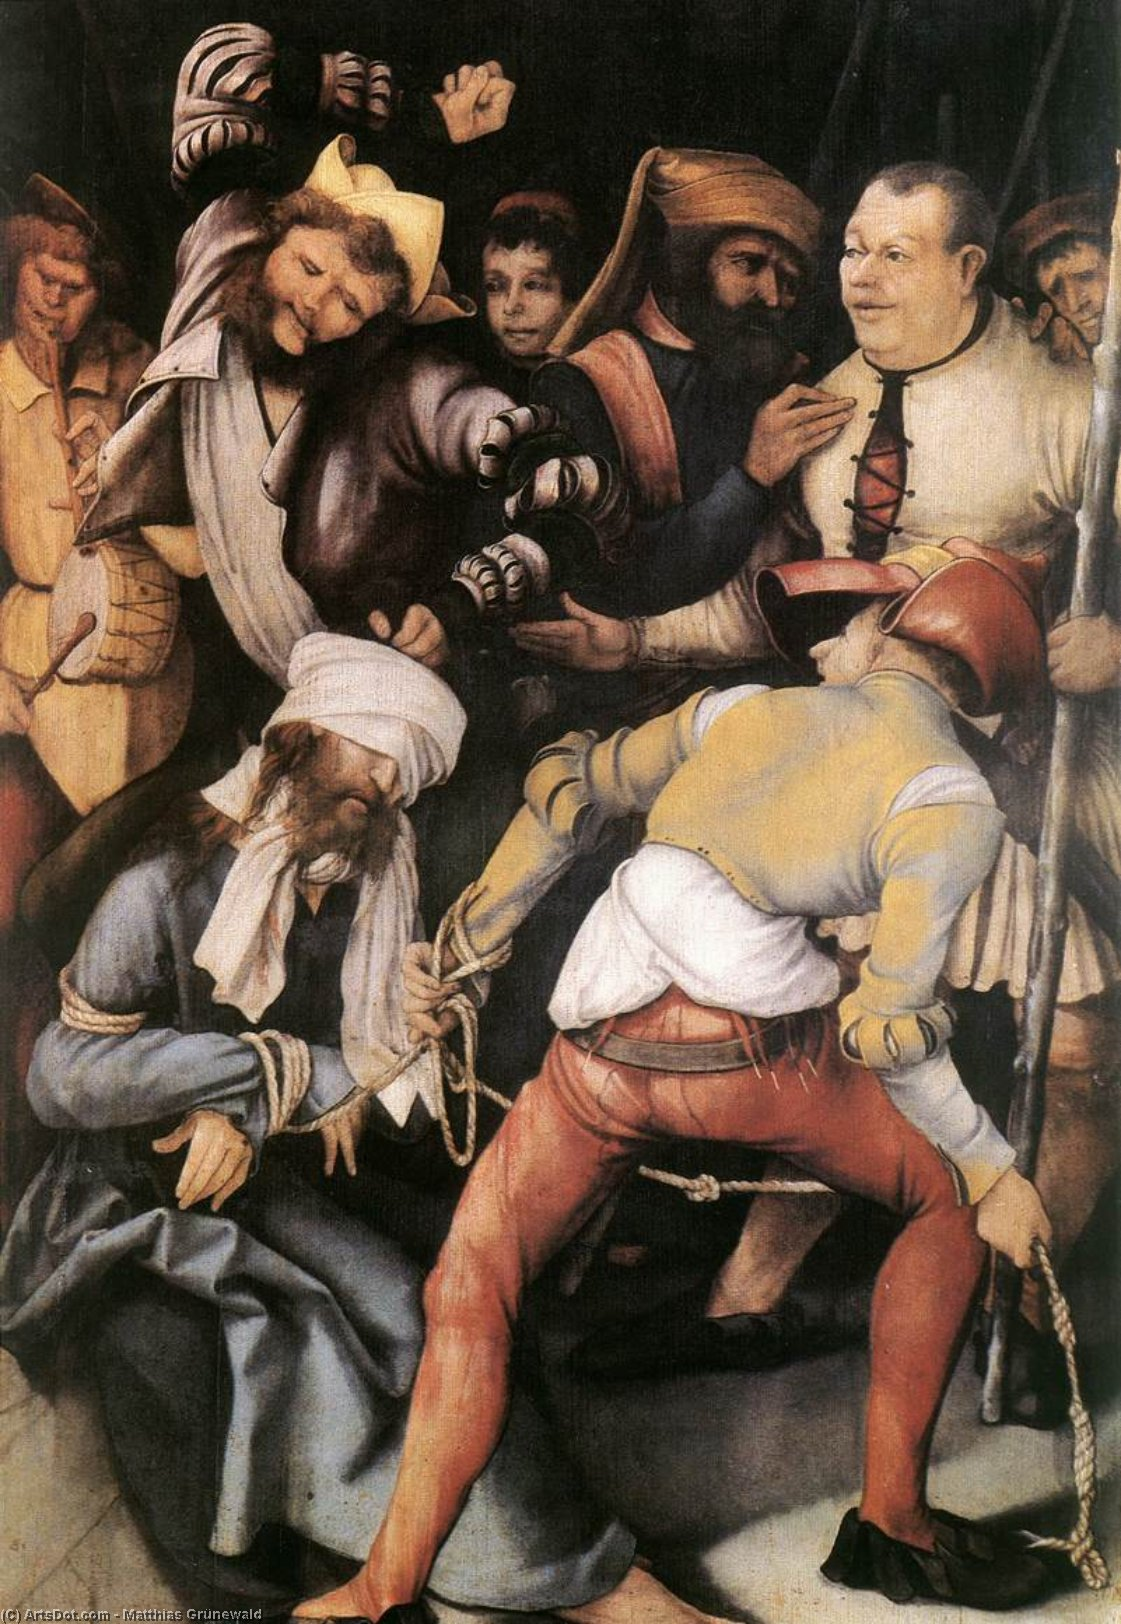 WikiOO.org - Encyclopedia of Fine Arts - Festés, Grafika Matthias Grünewald - The Mocking of Christ